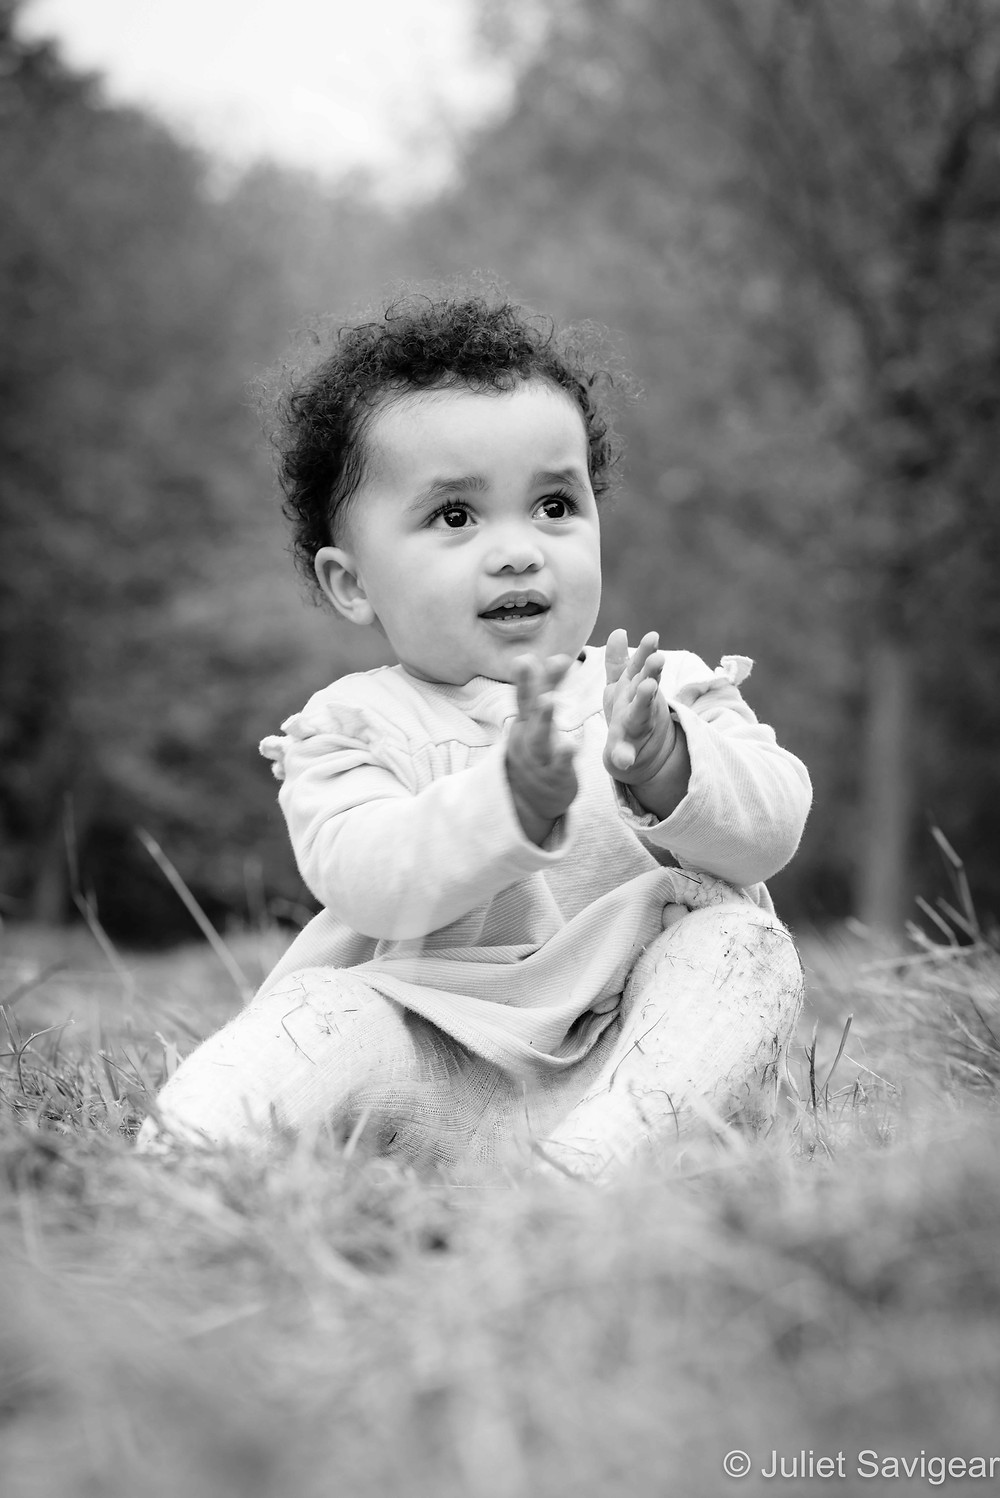 Baby girl clapping